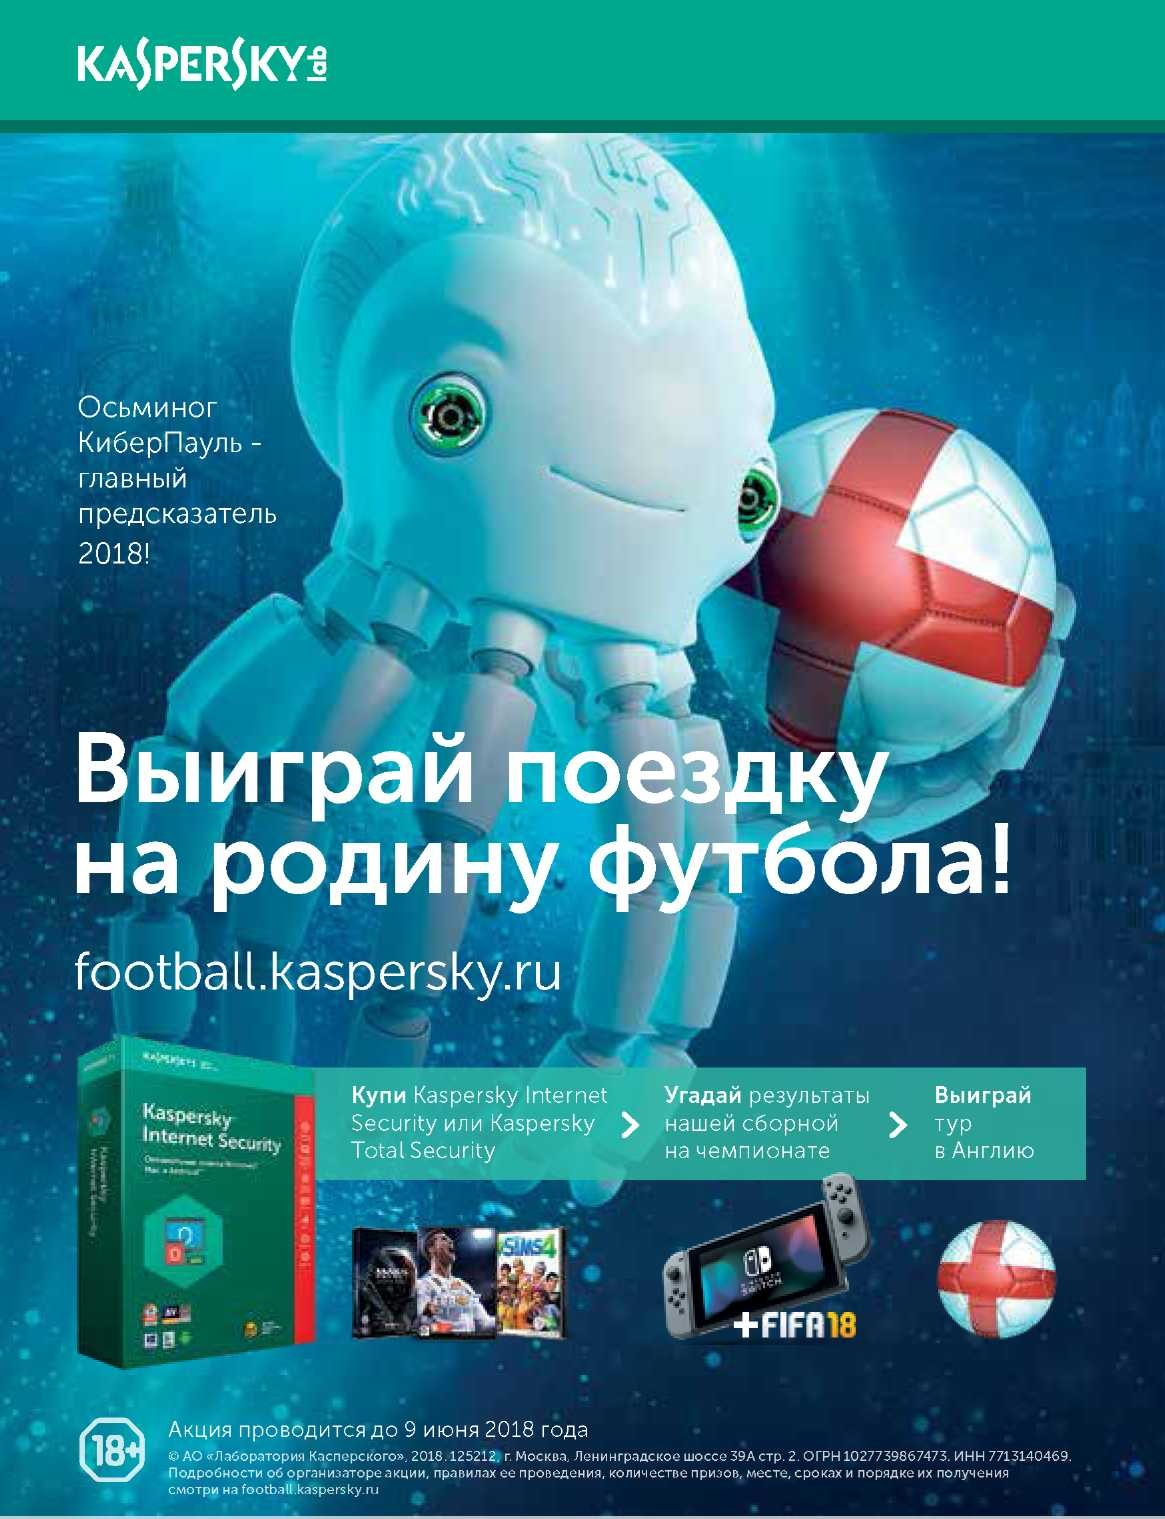 Kaspersky Internet Security: * 3 extension device